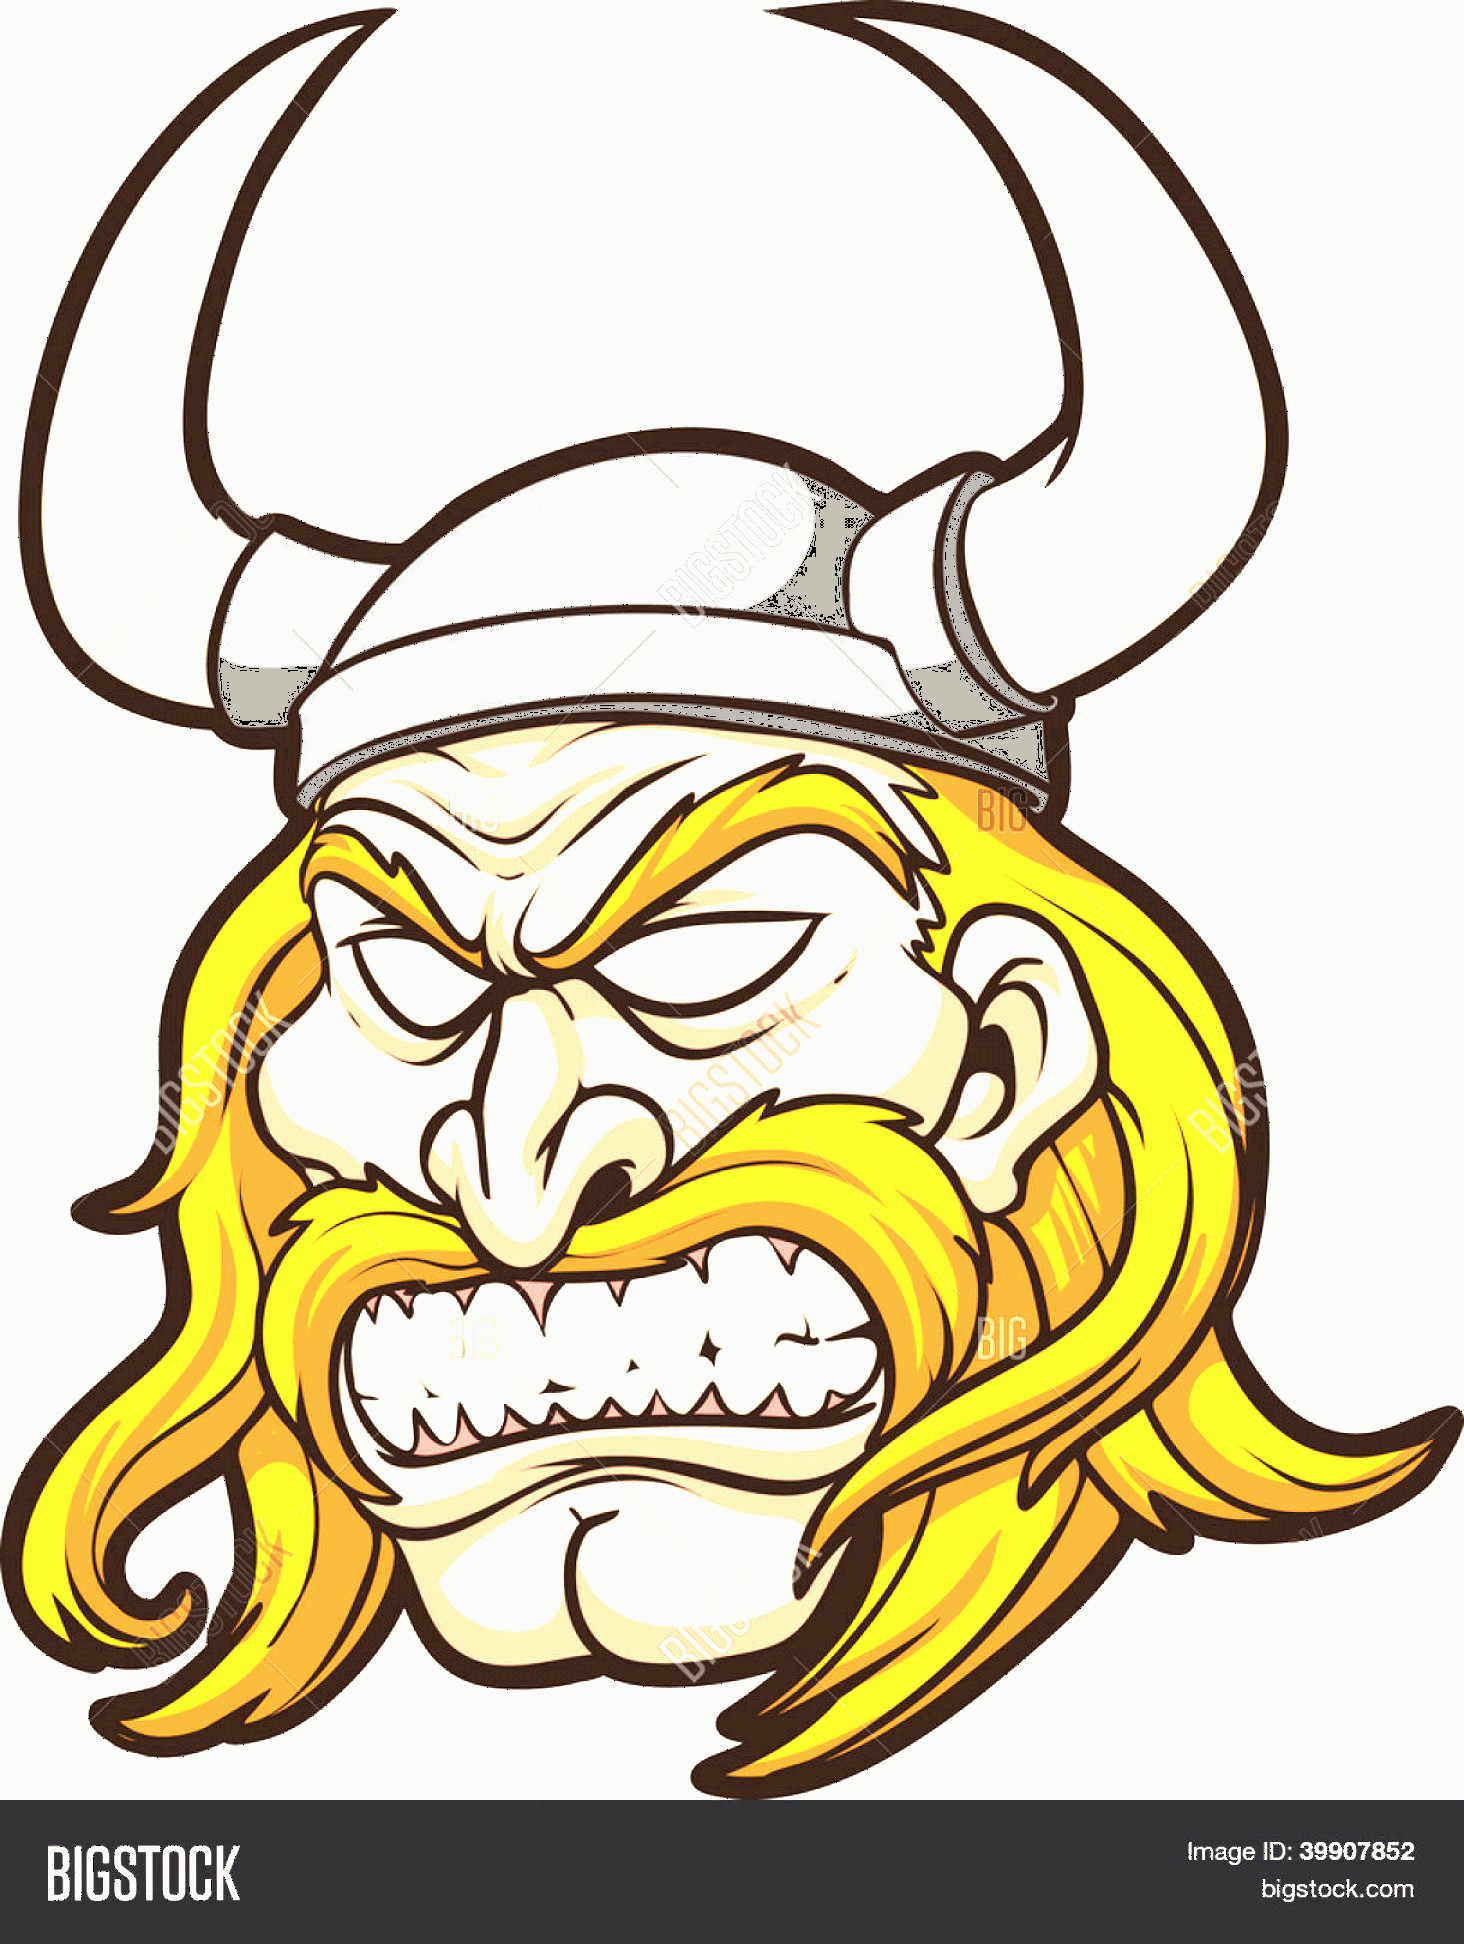 Viking Head Vector: Stock Vector Viking Head Vector Clip Art Illustration With Simple Gradients All In A Single Layer